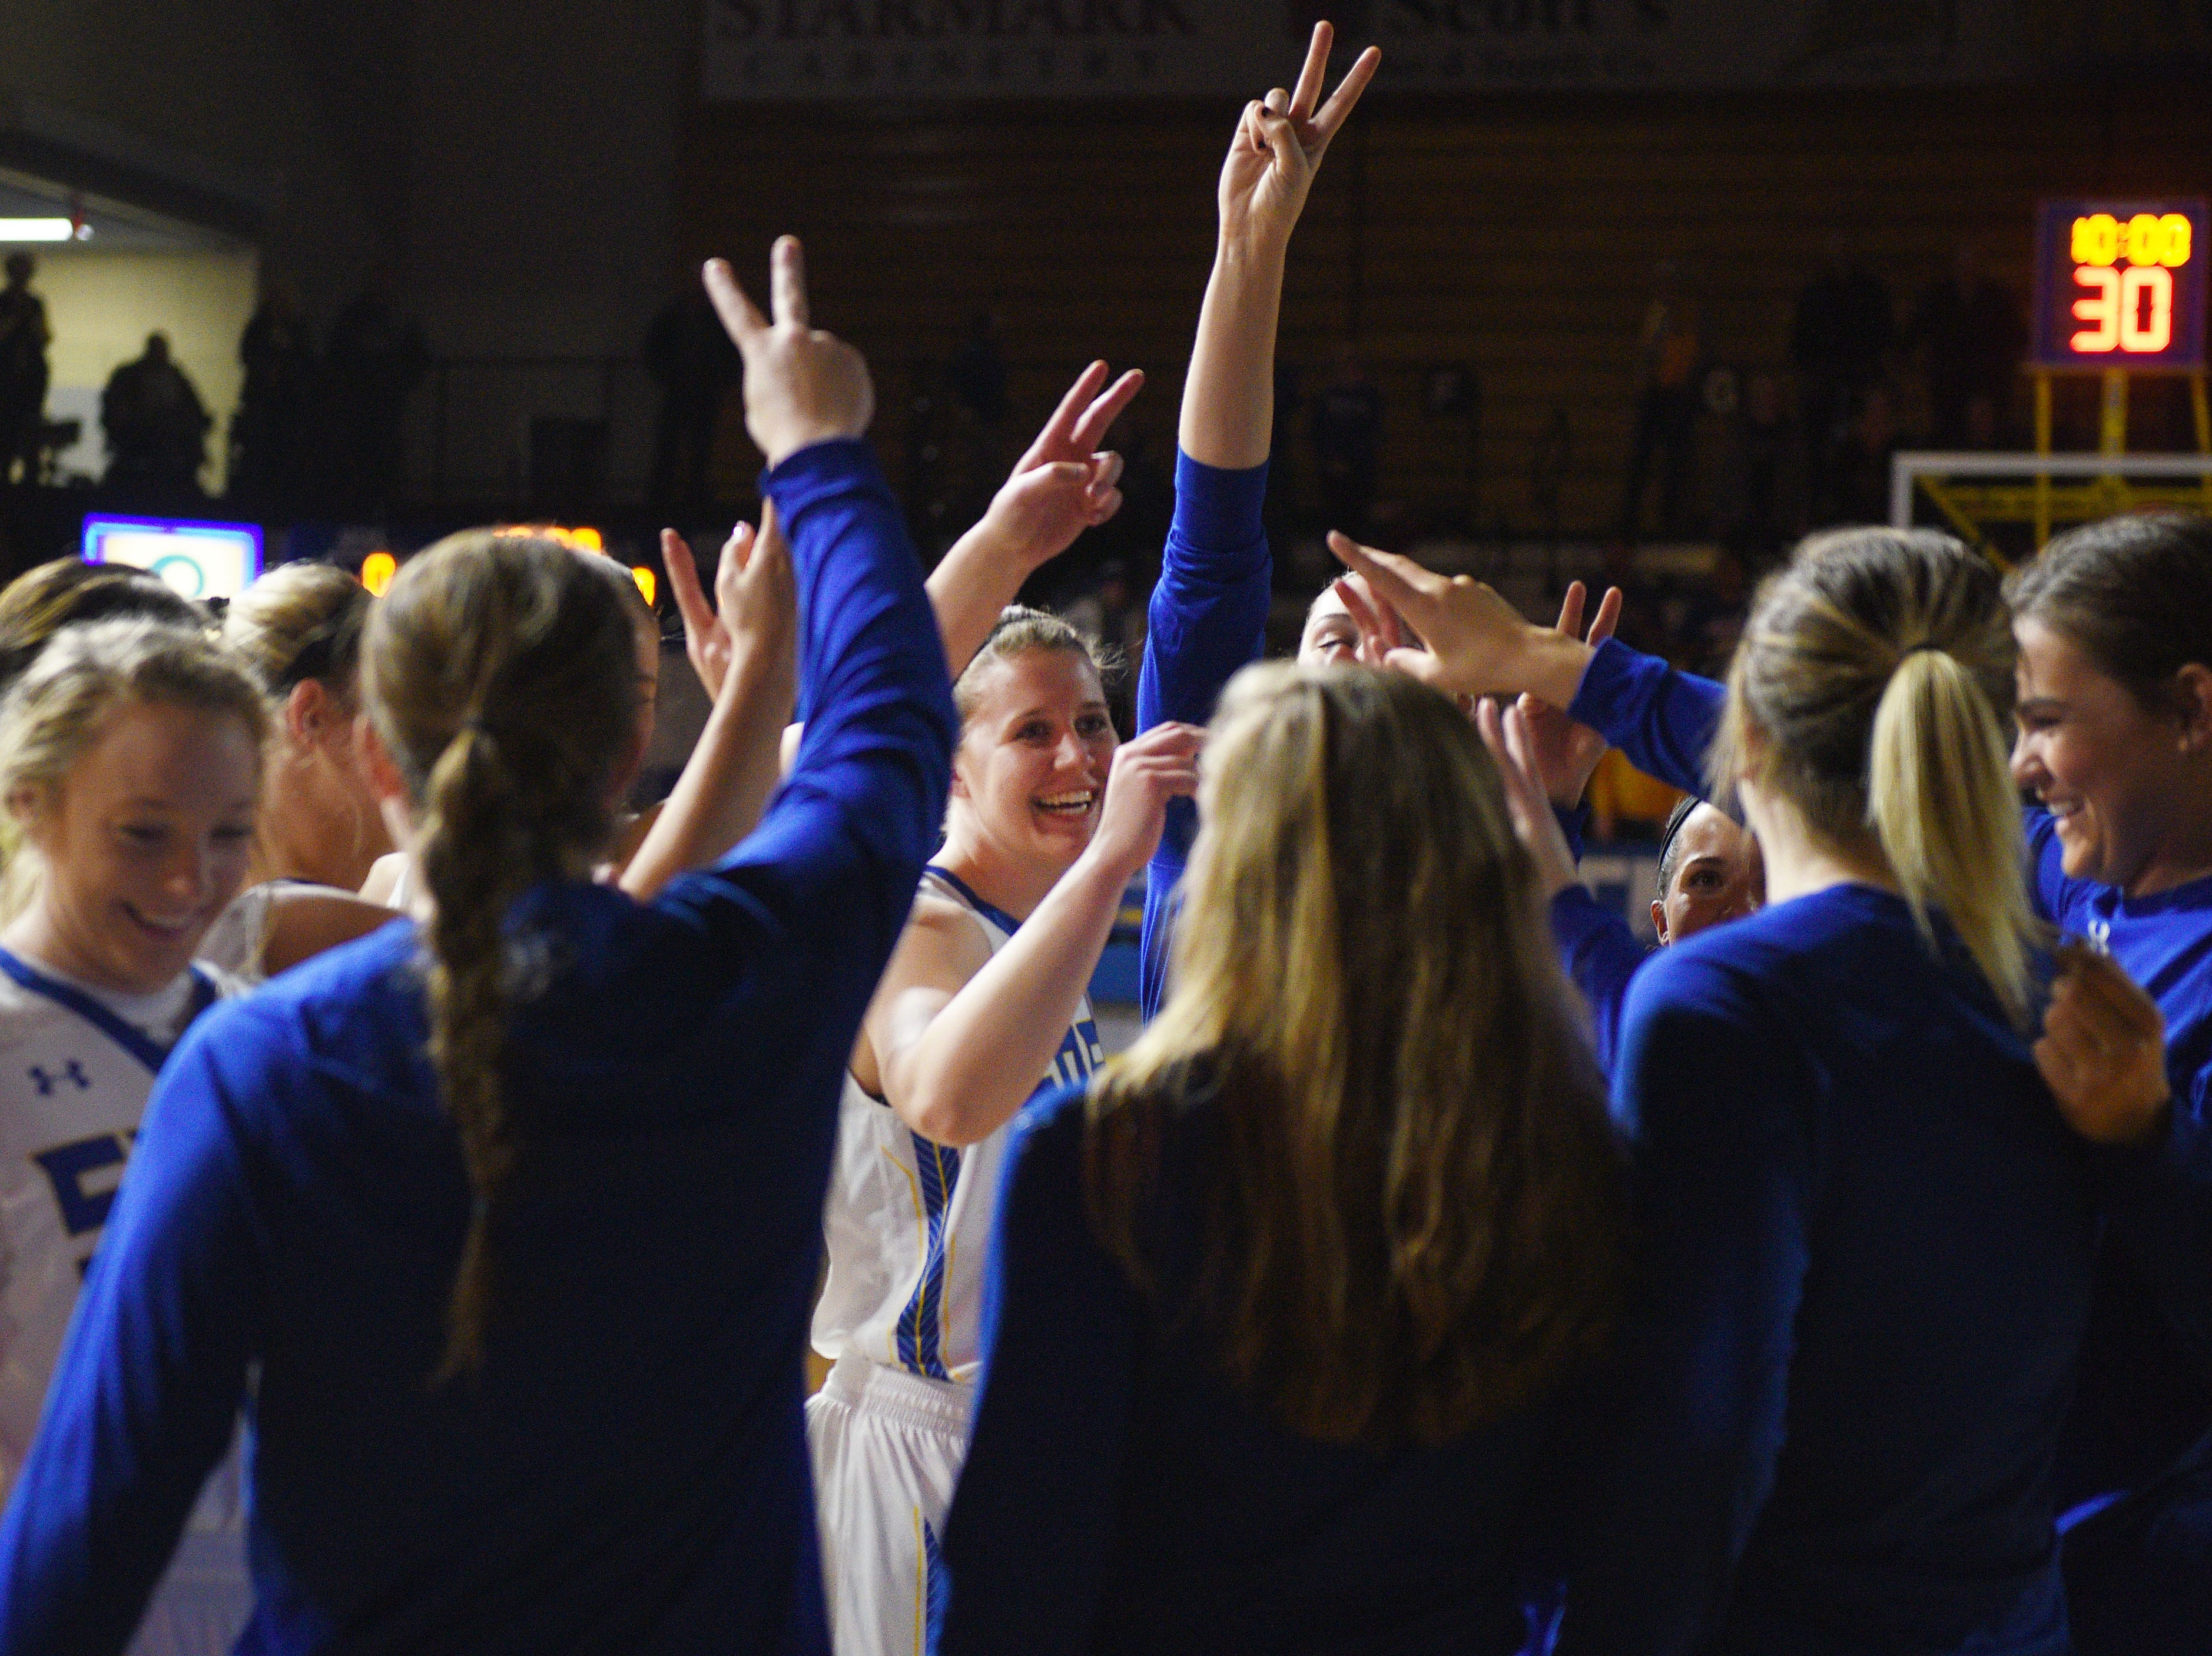 SDSU gets in a huddle before the game against NDSU Wednesday, Jan. 23, at Frost Arena in Brookings.